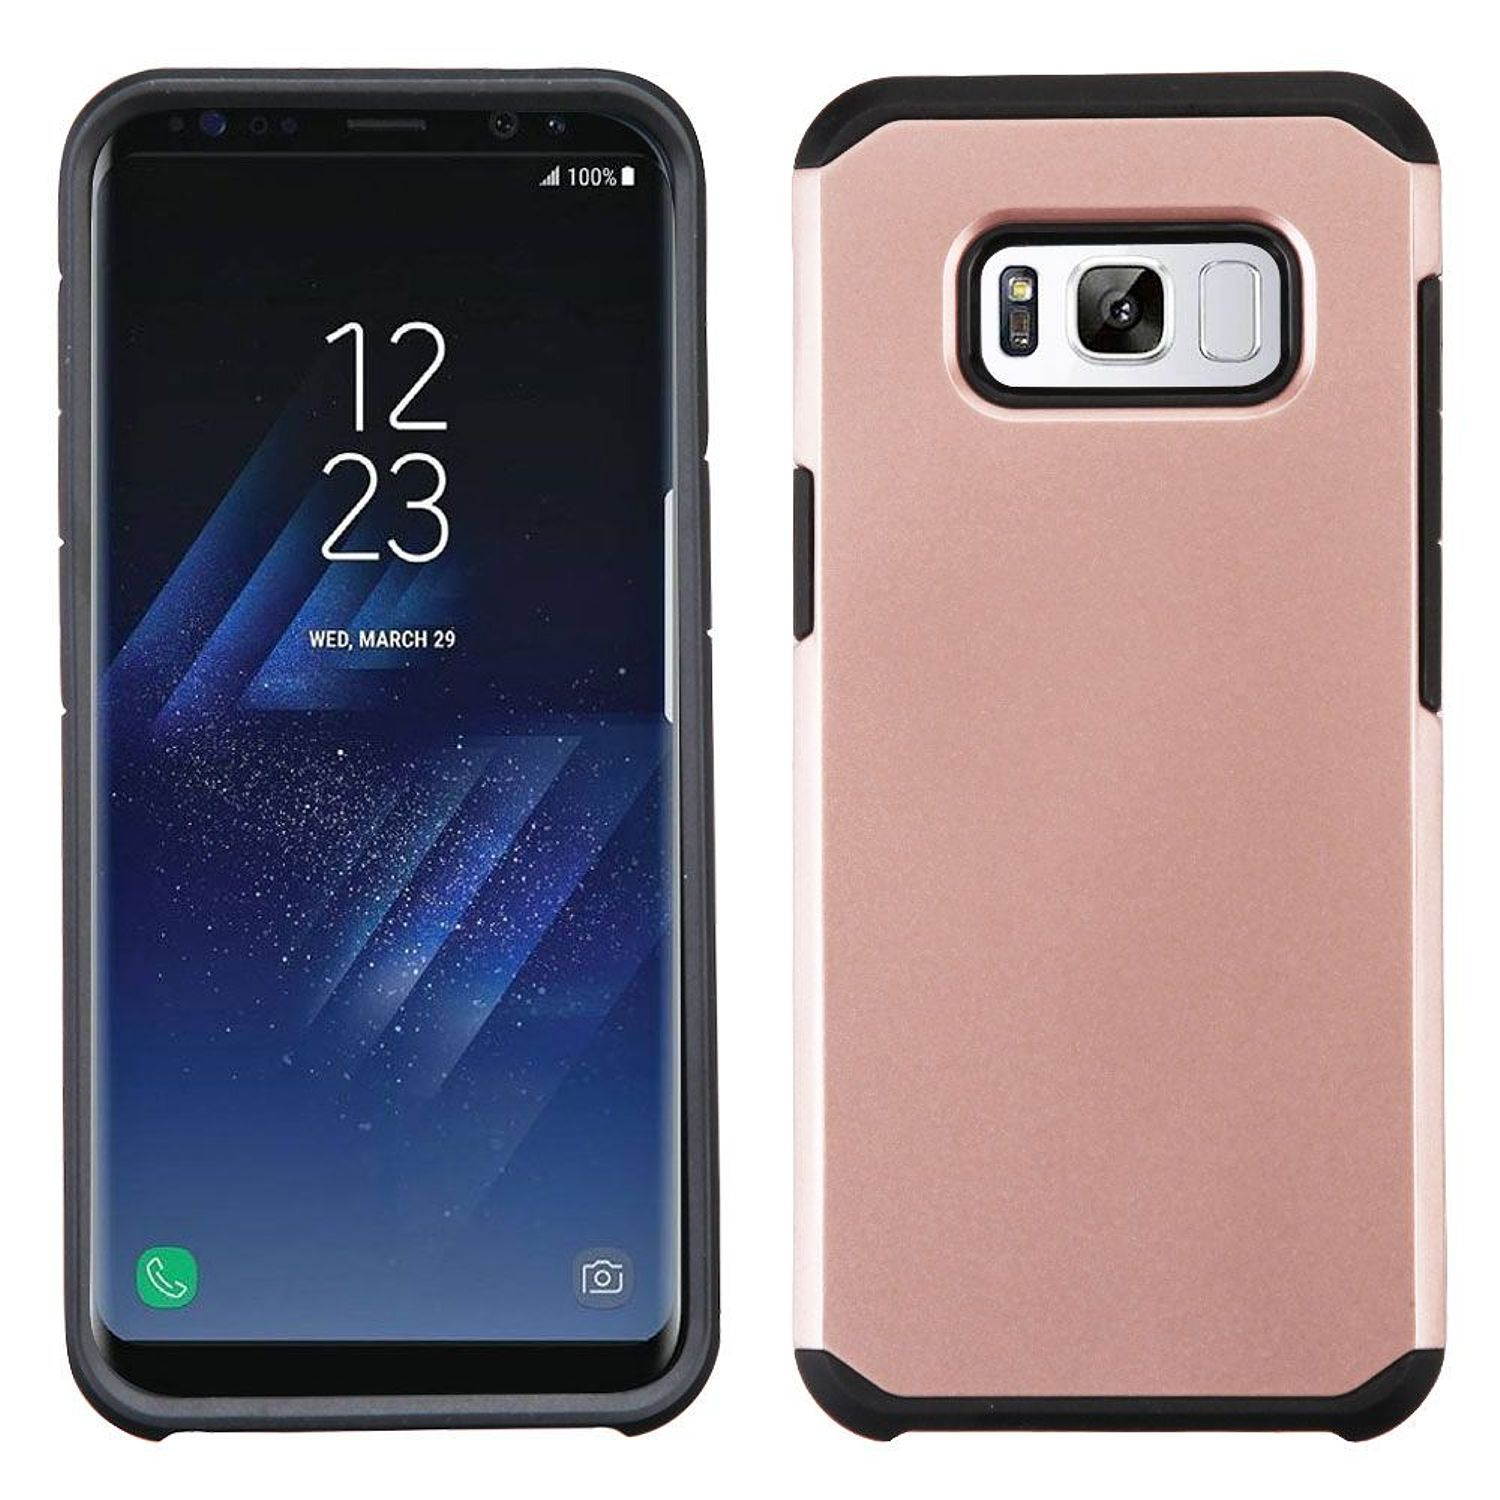 Samsung Galaxy S8+ Case, Samsung Galaxy S8 Plus Case, by Insten Dual Layer [Shock Absorbing] Hybrid Hard Plastic/Soft TPU Rubber Case Phone Cover For Samsung Galaxy S8 Plus S8+, Rose Gold/Black